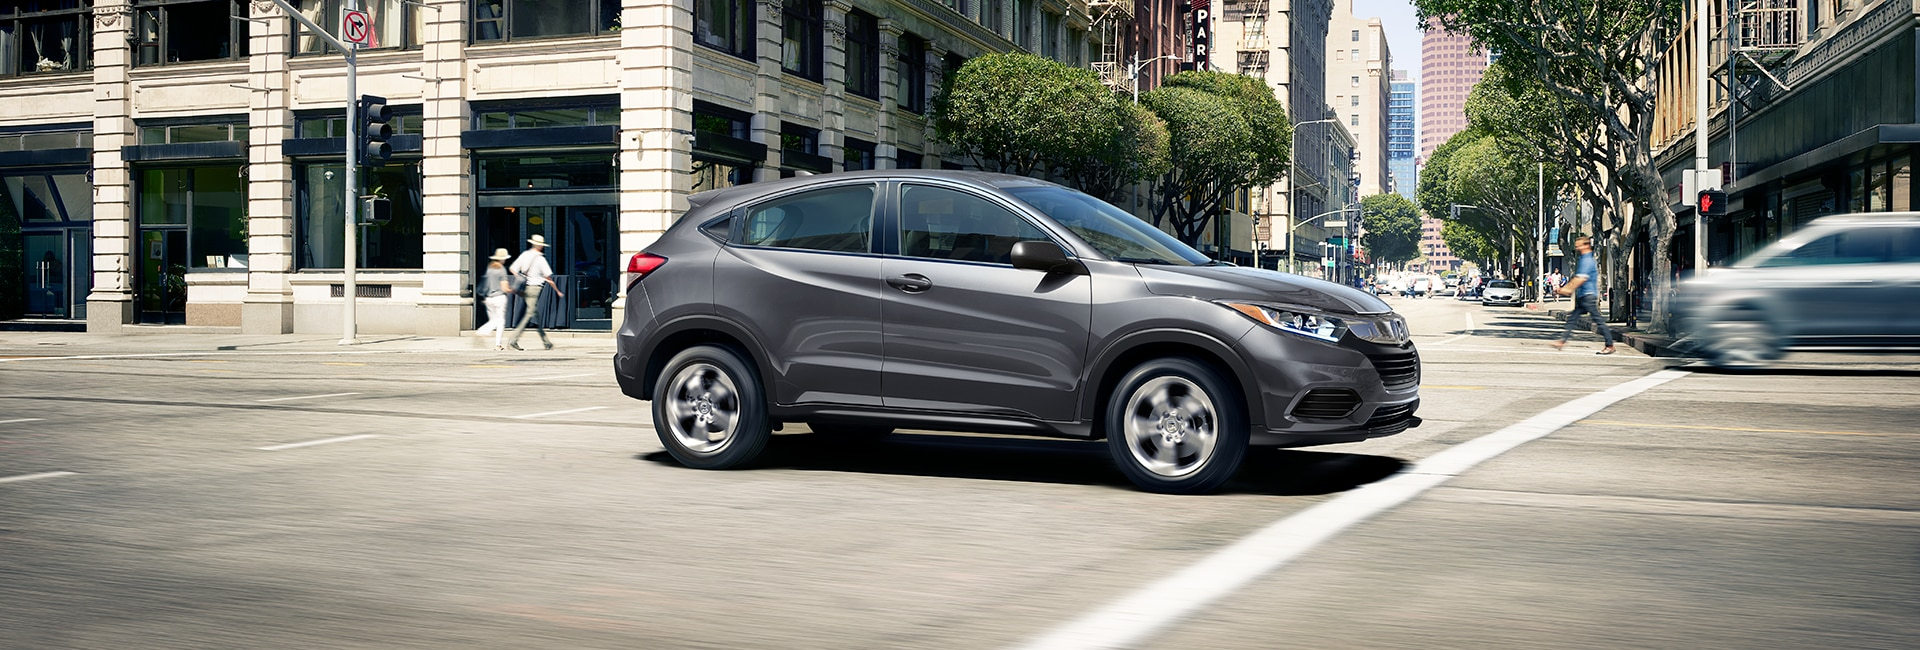 2020 Honda HR-V Exterior Features